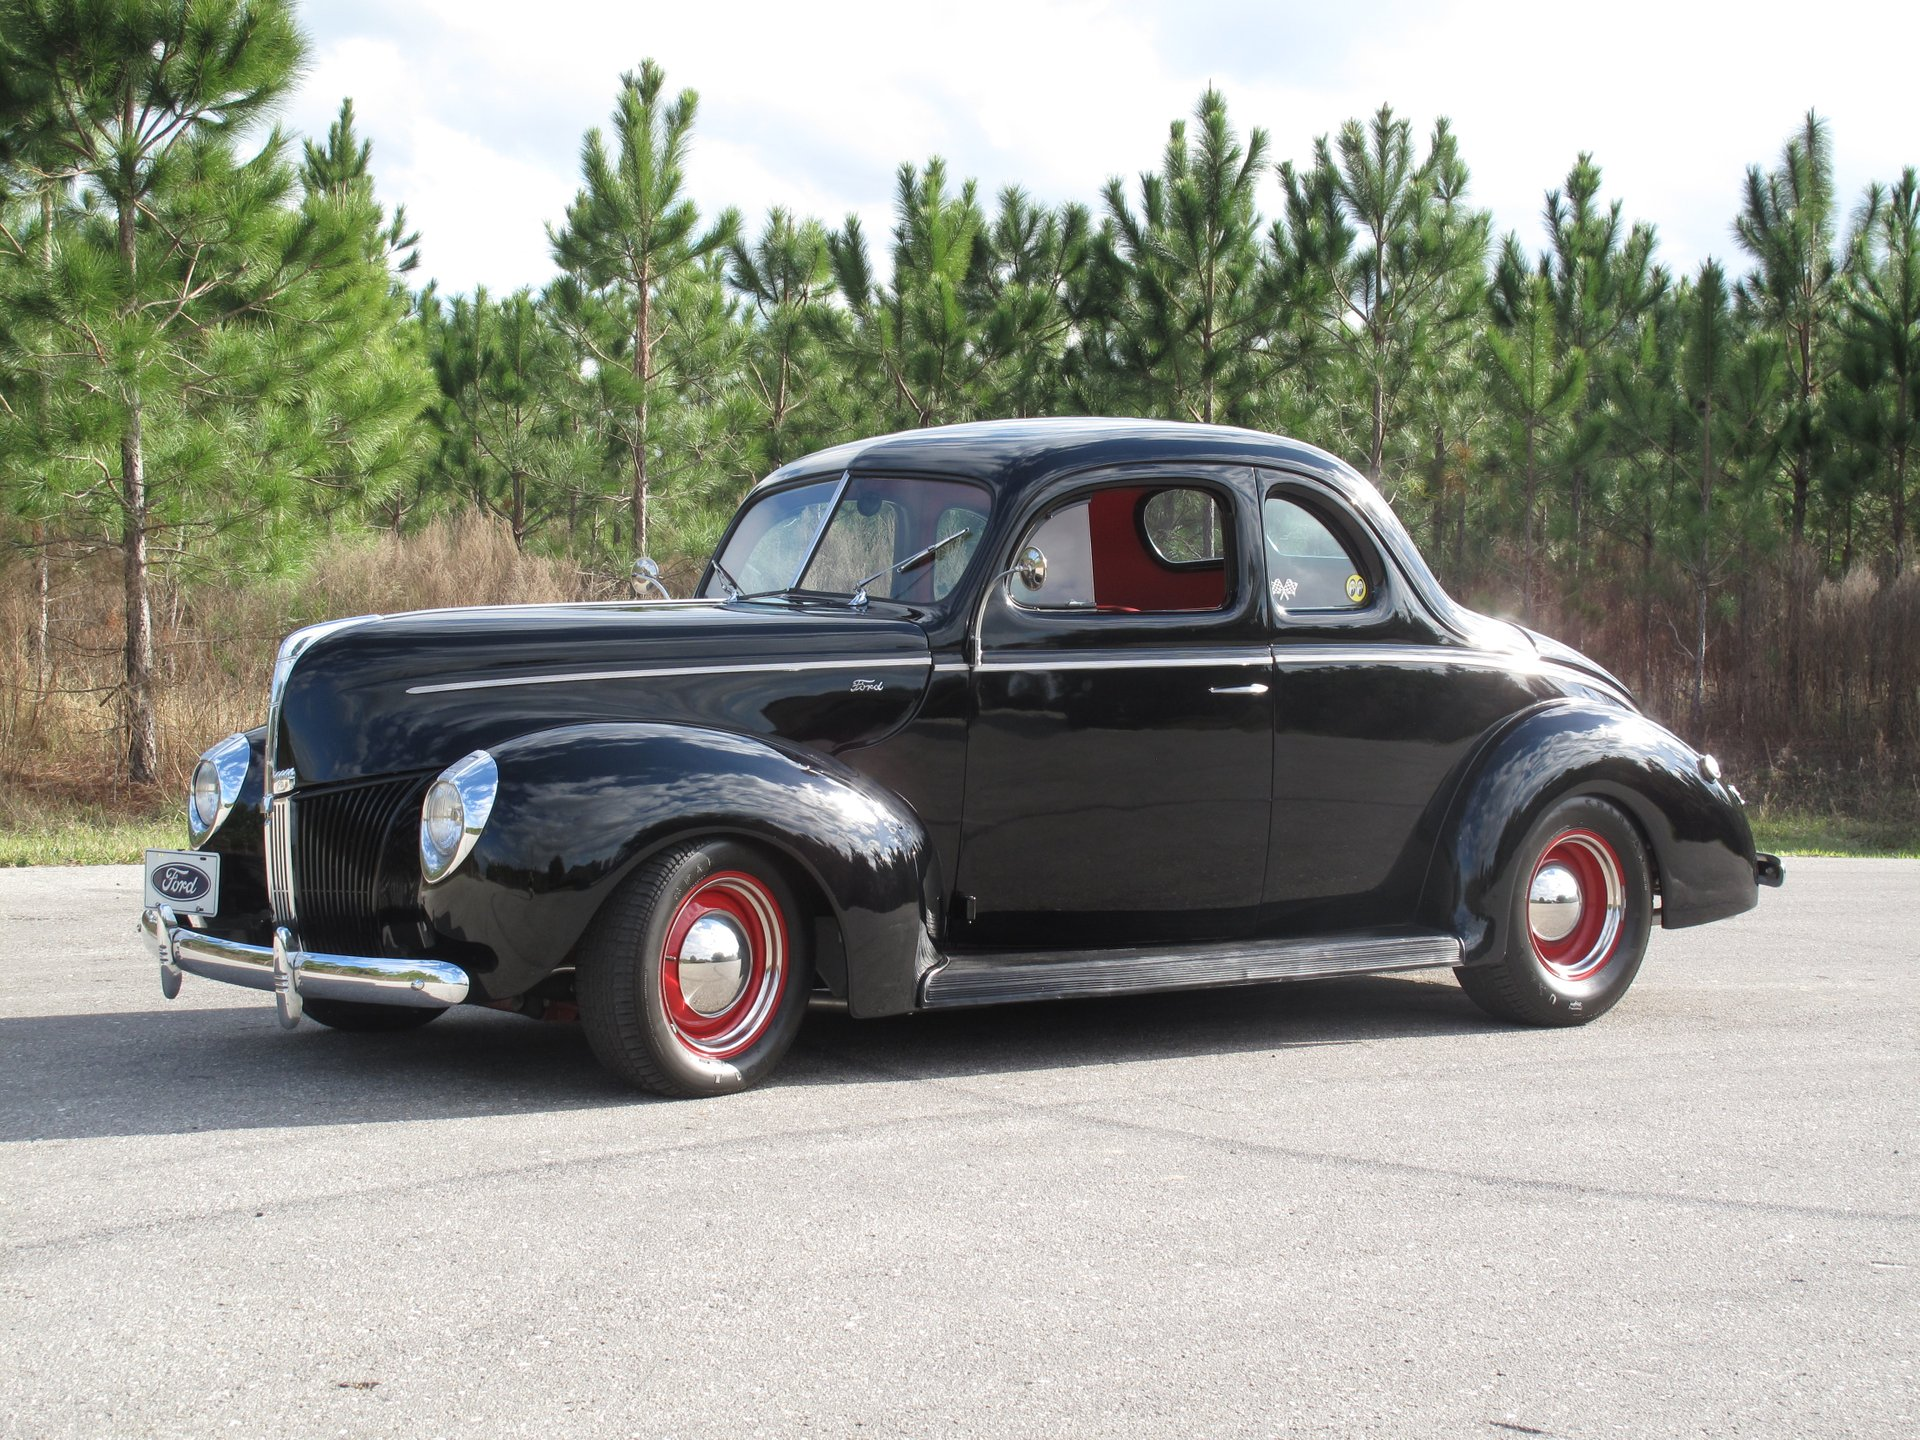 Coupe Ford 1940 Ford Coupe Burnyzz American Classic Horse Power